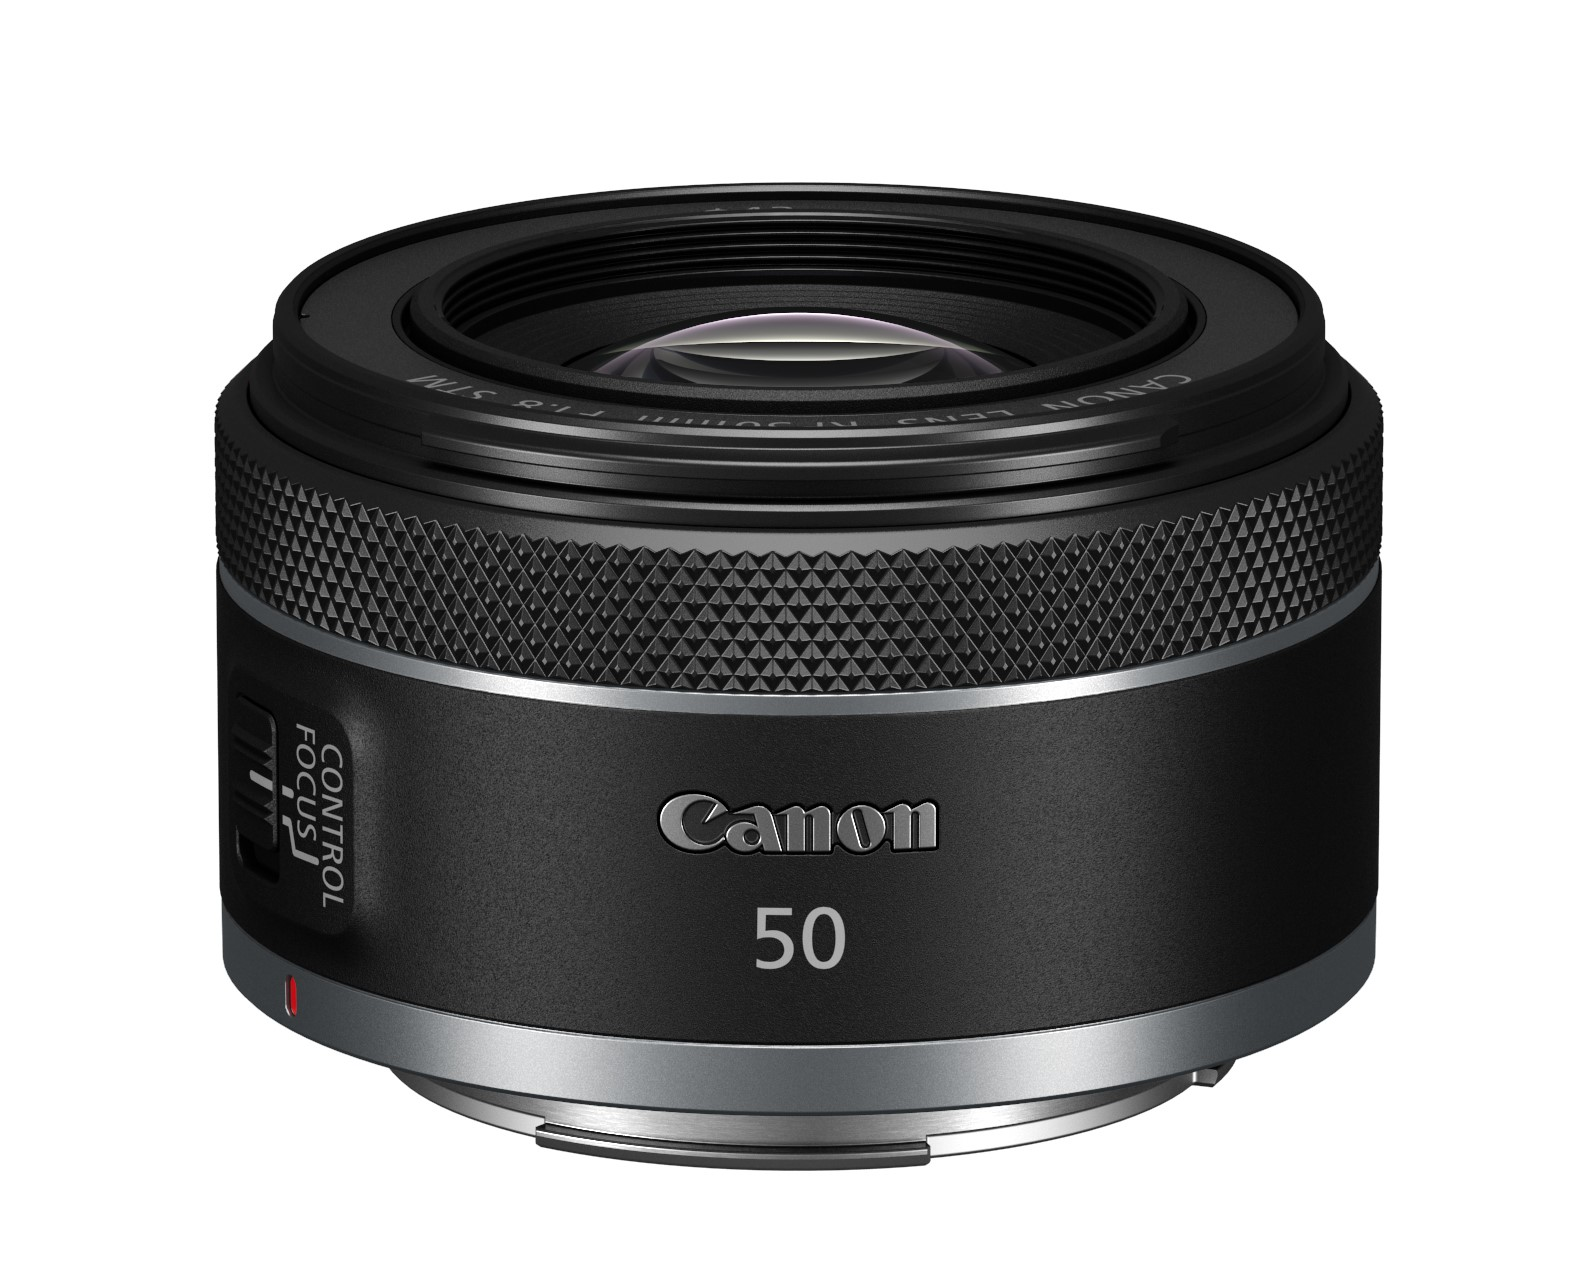 Canon Rf 50mm F/1.8 STM Review